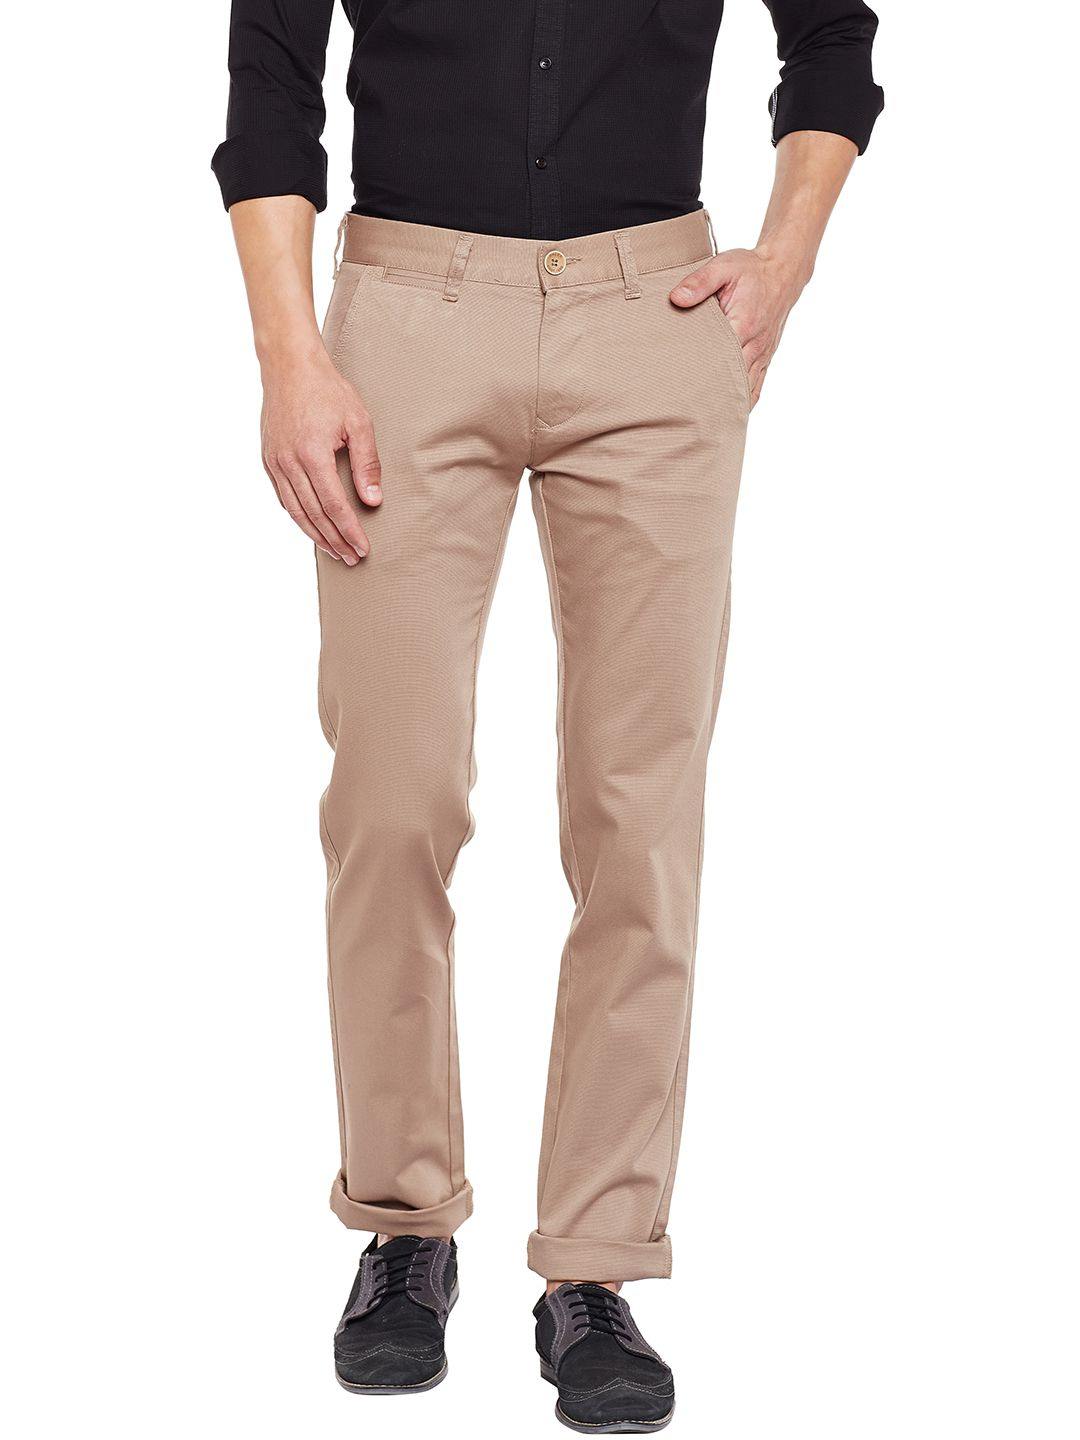 KILLER Brown Slim -Fit Flat Trousers